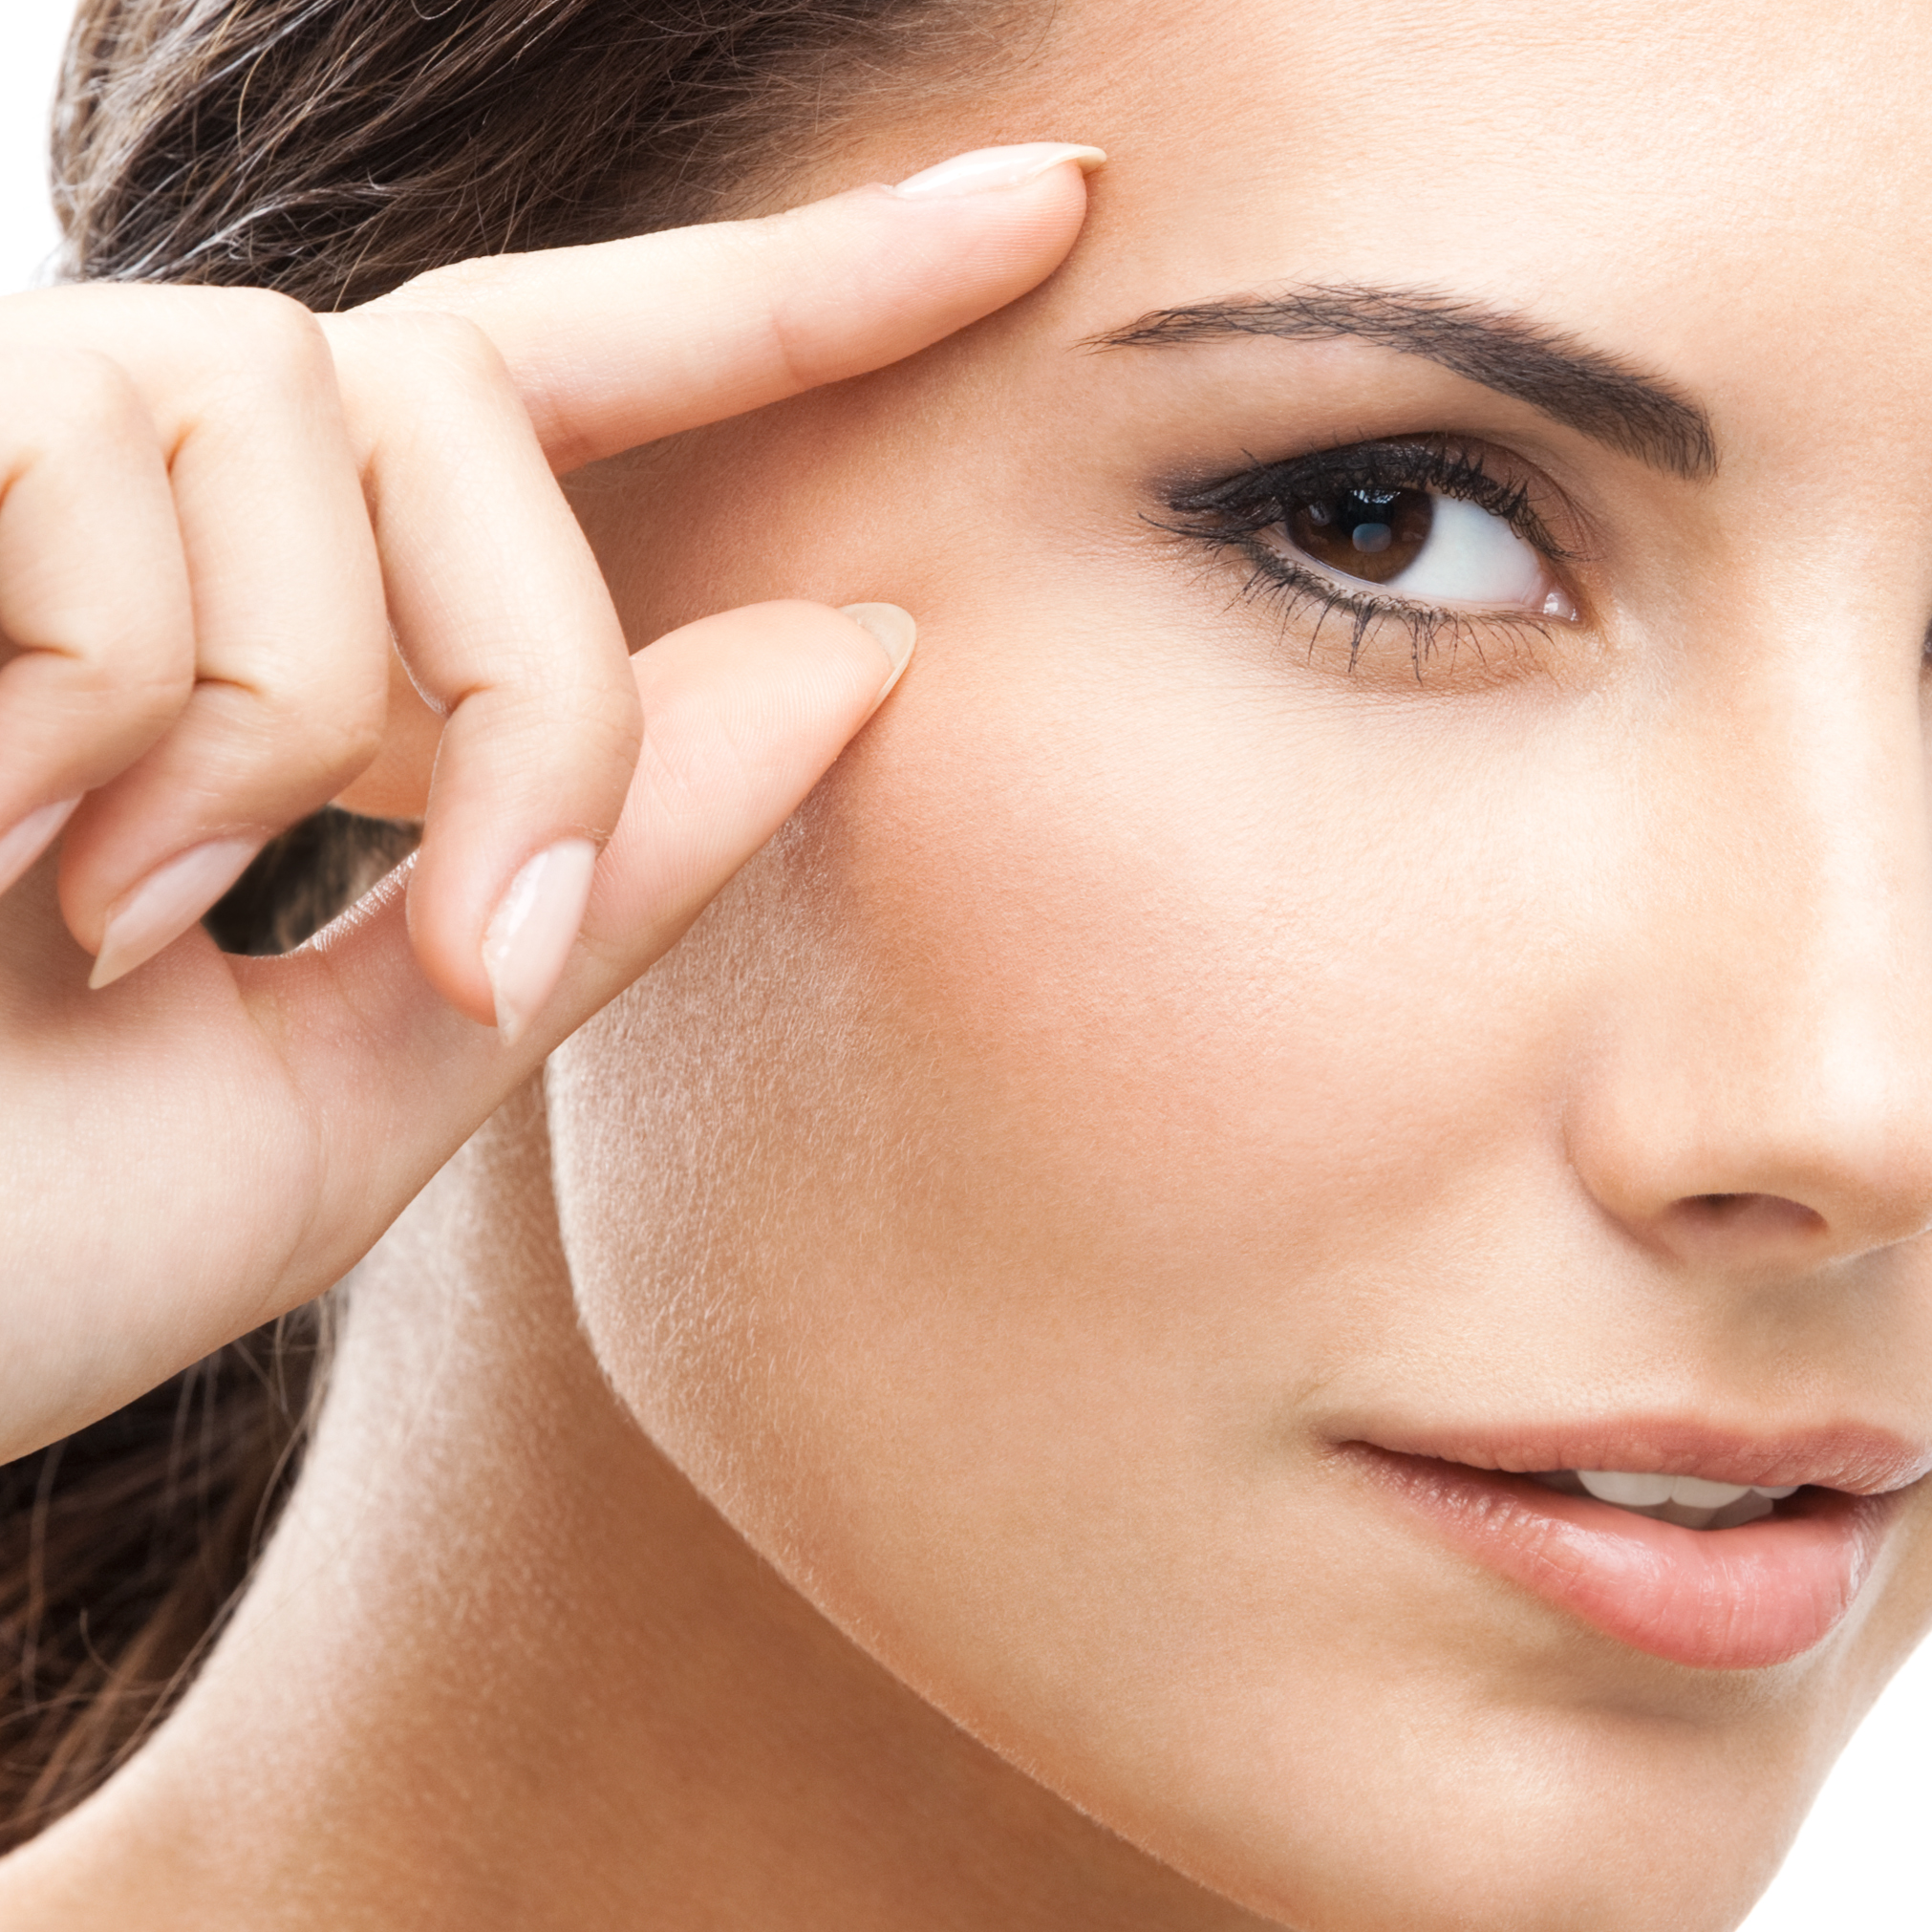 Kerrville Med Spa | Kerrville Skin Care | Botox for Wrinkles